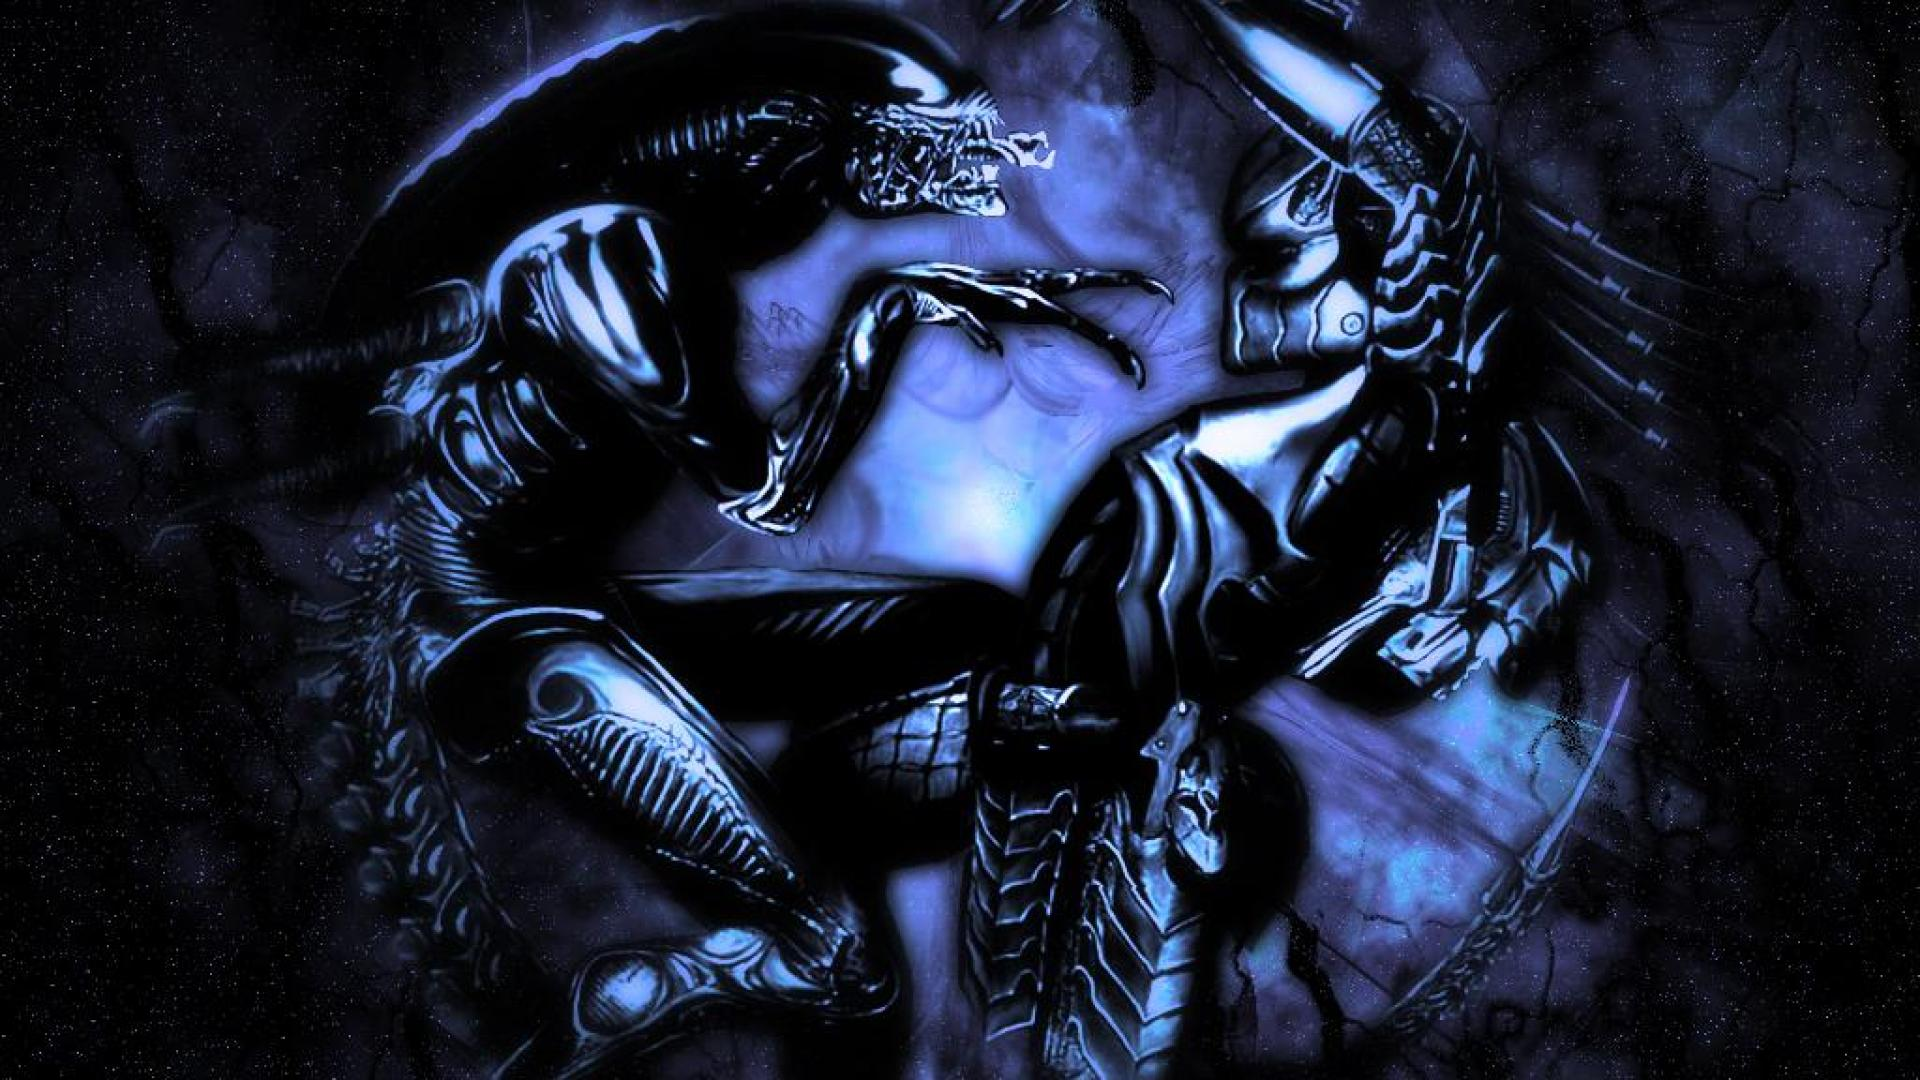 Cool pictures of aliens